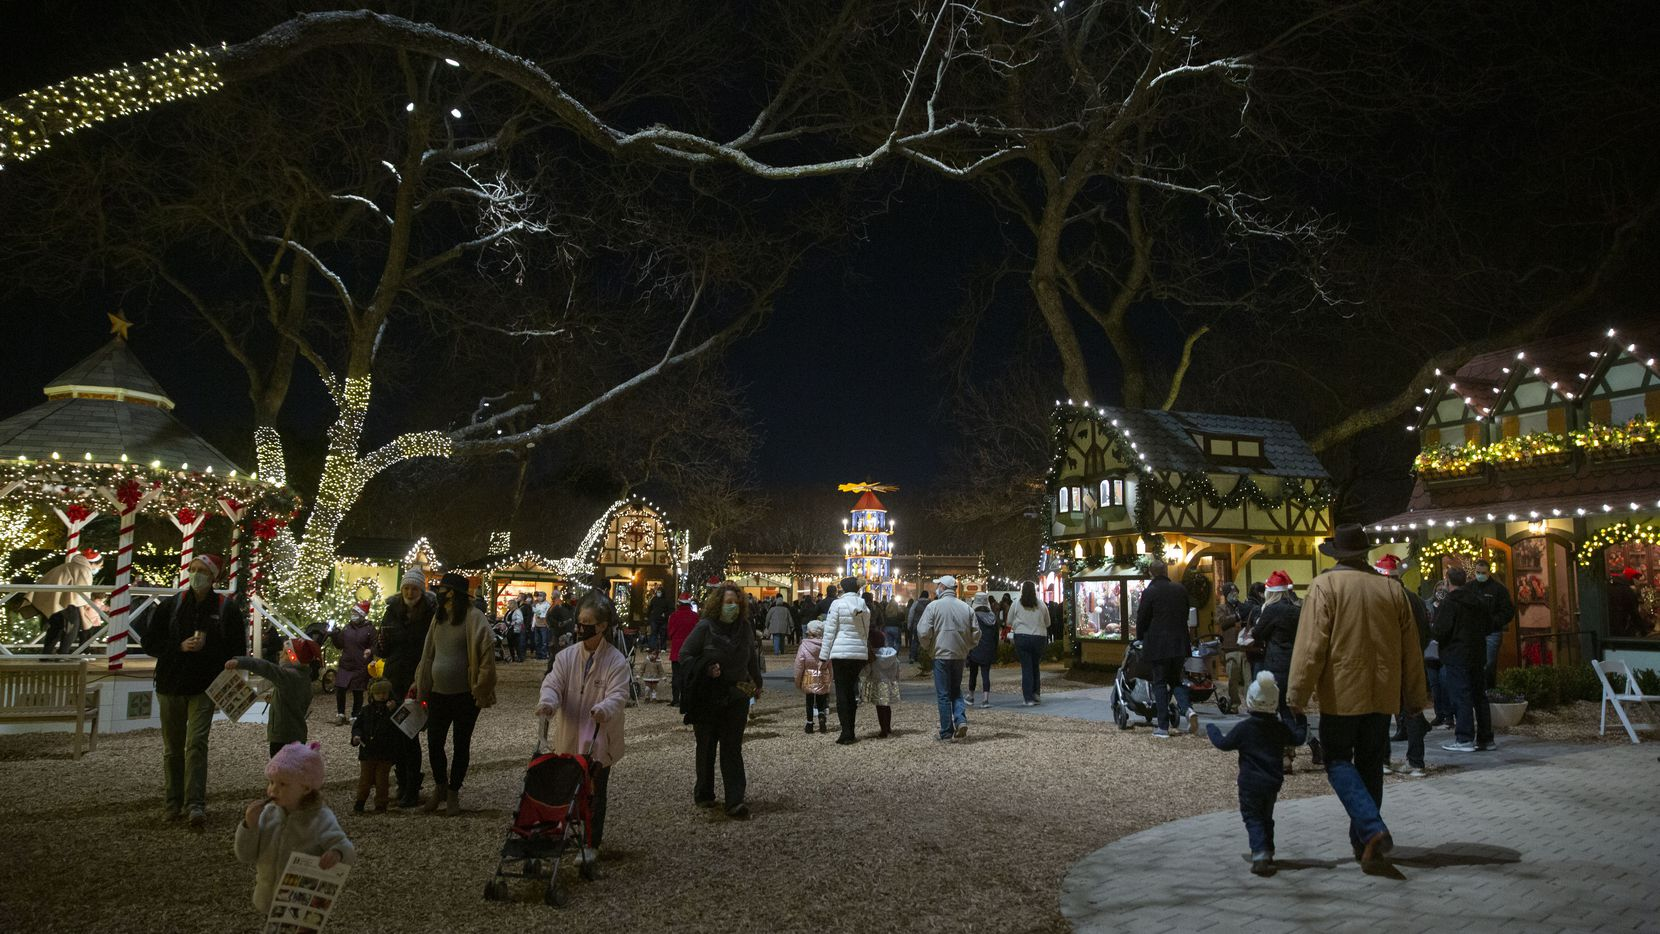 The Christmas Village at Dallas Arboretum includes a German Christmas pyramid and quaint shops, inspired by Christkindlmarkt.